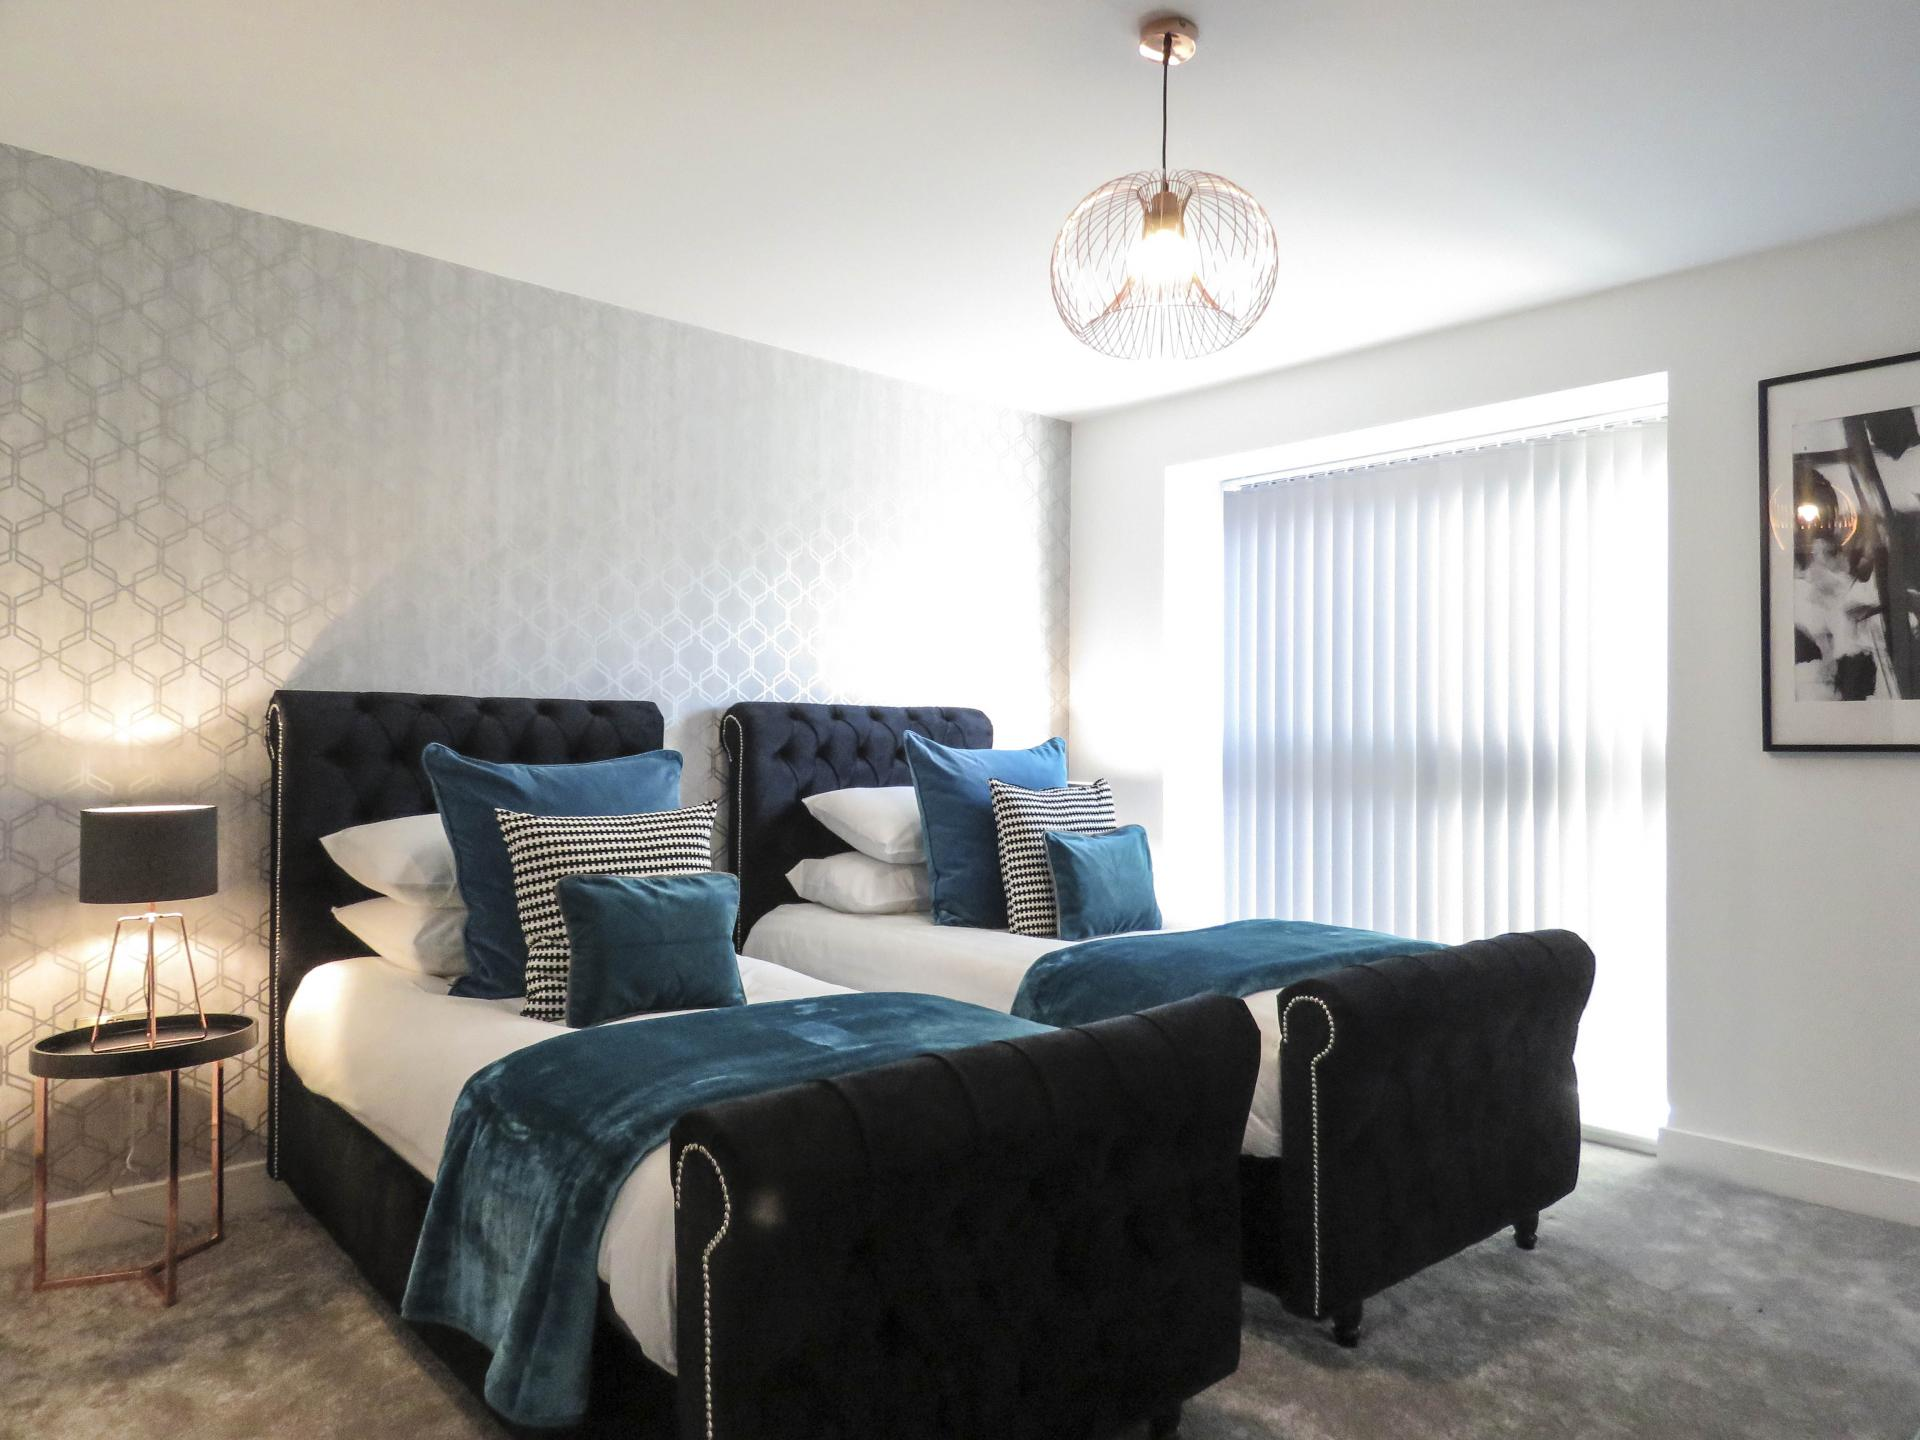 twin at Kettleworks Serviced Apartments